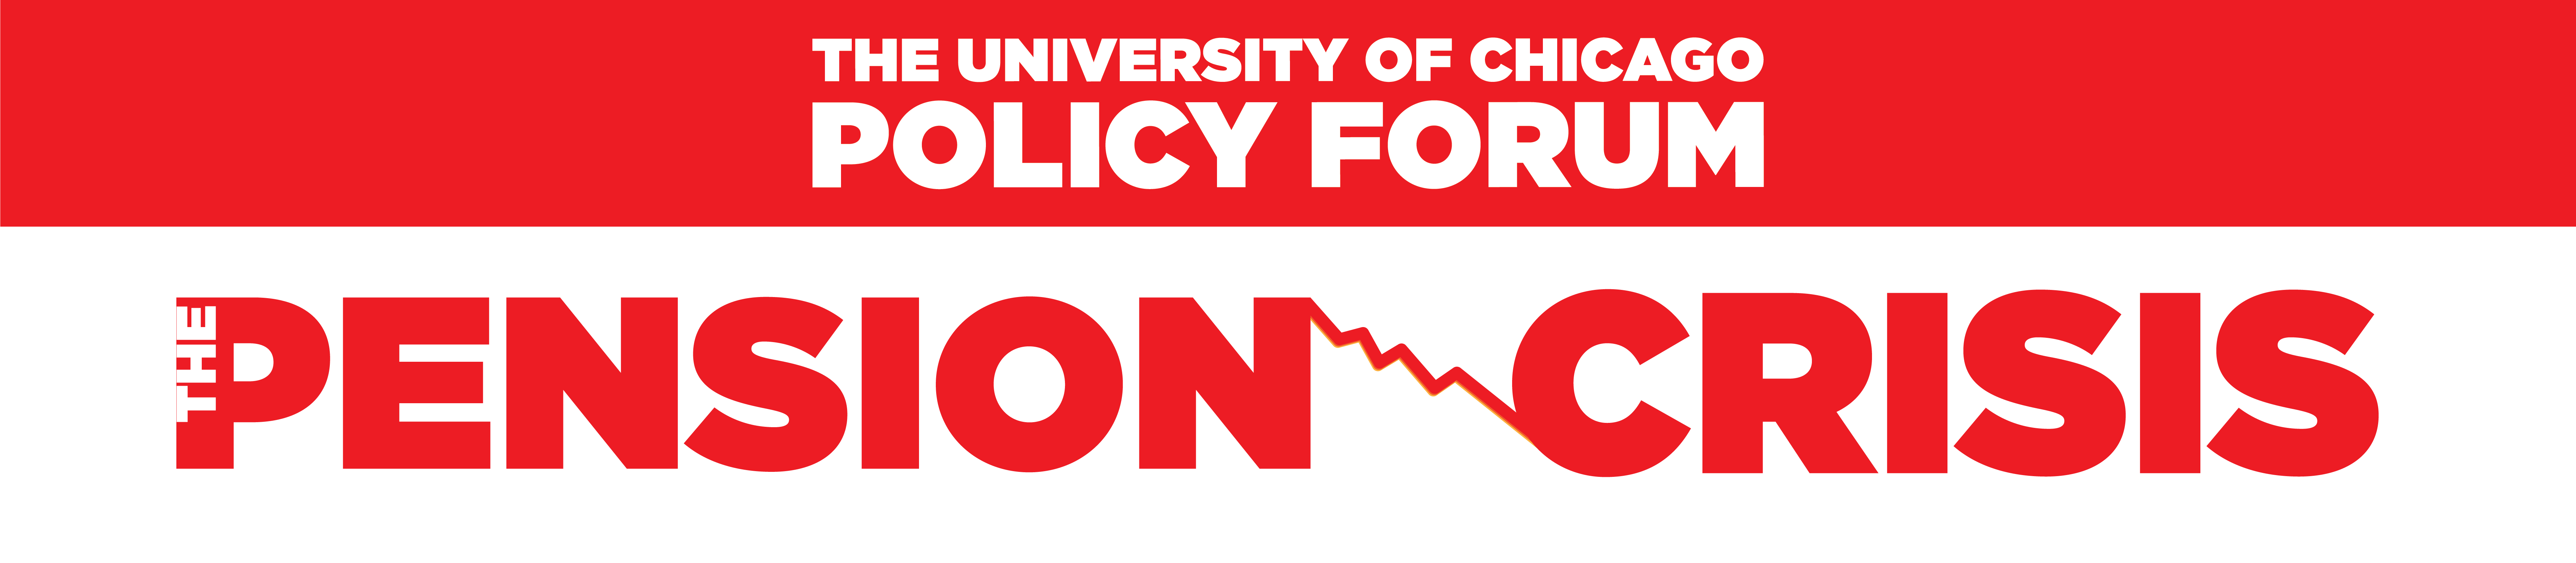 PolicyForumPensionCrisis-Graphic2-01